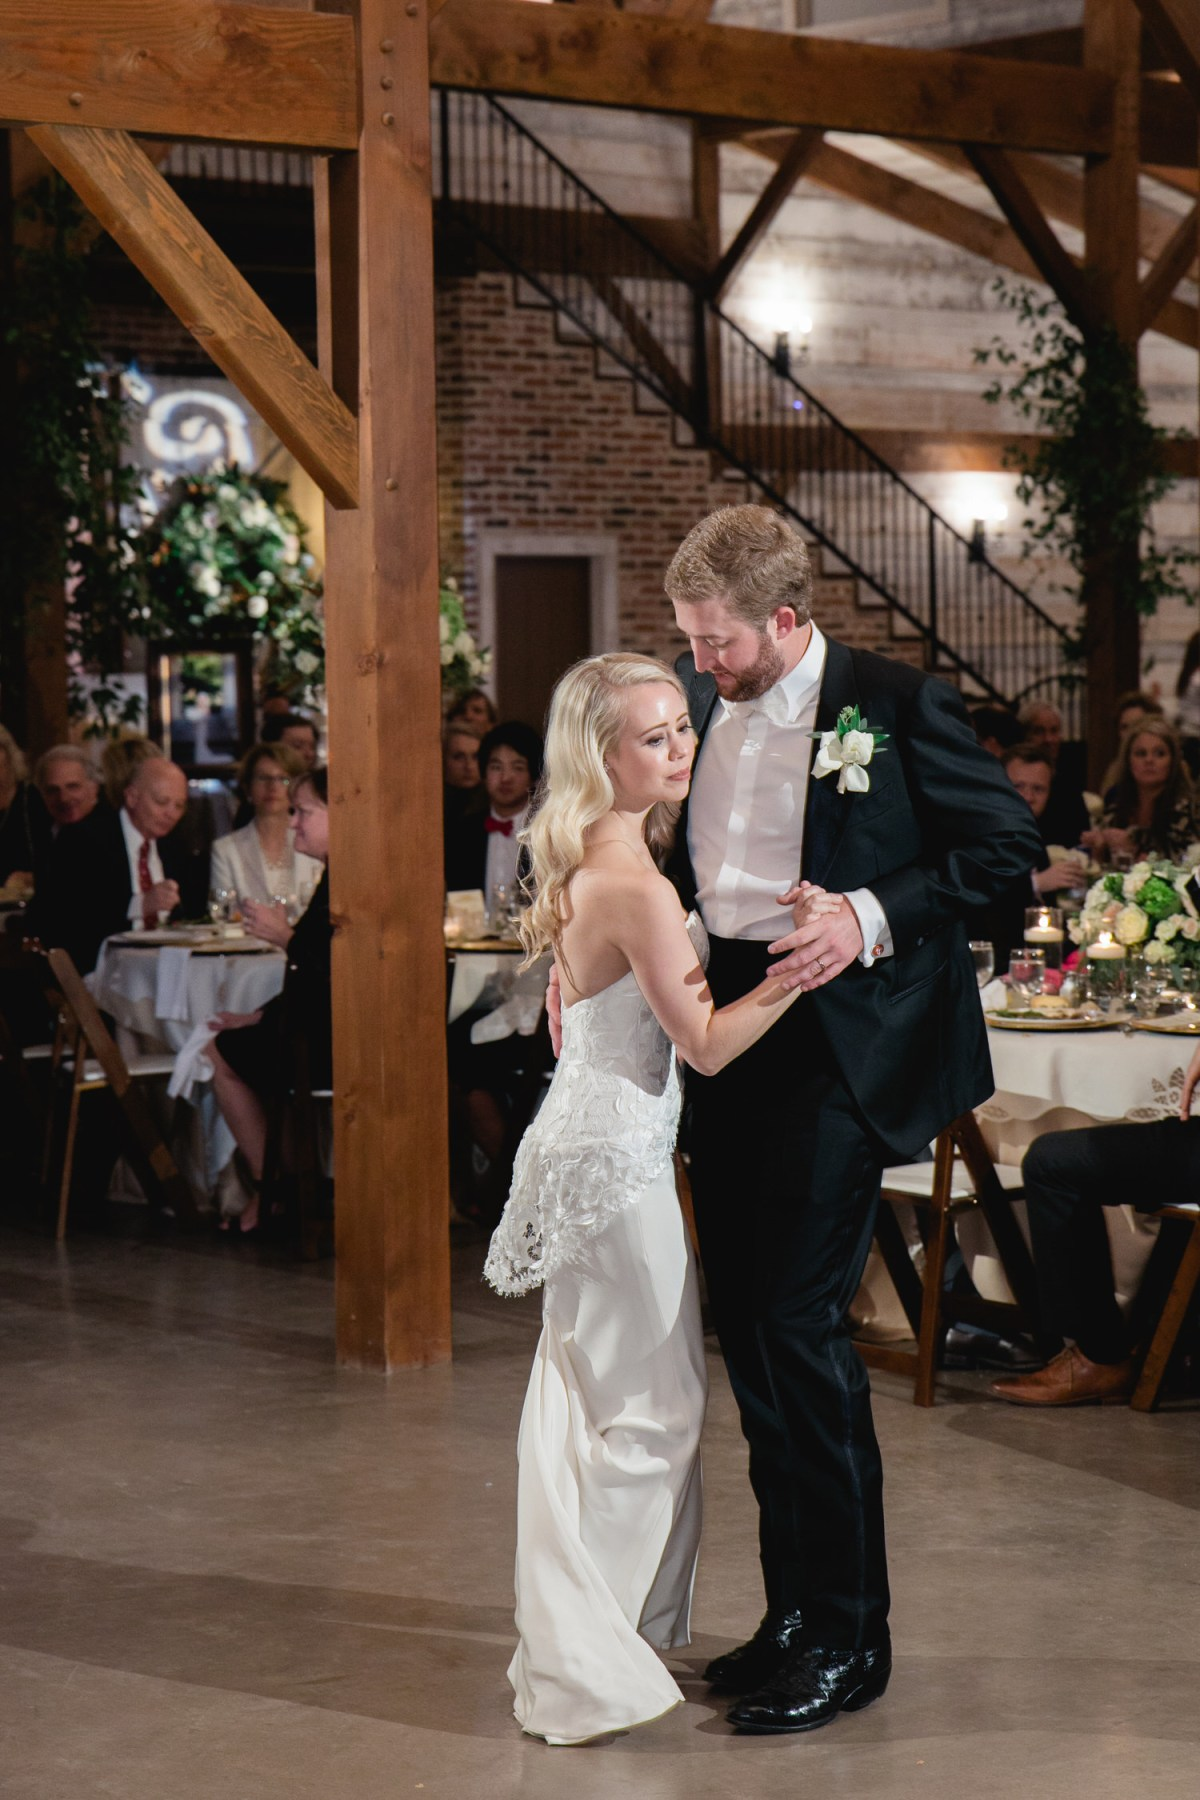 eberley brooks events first dance